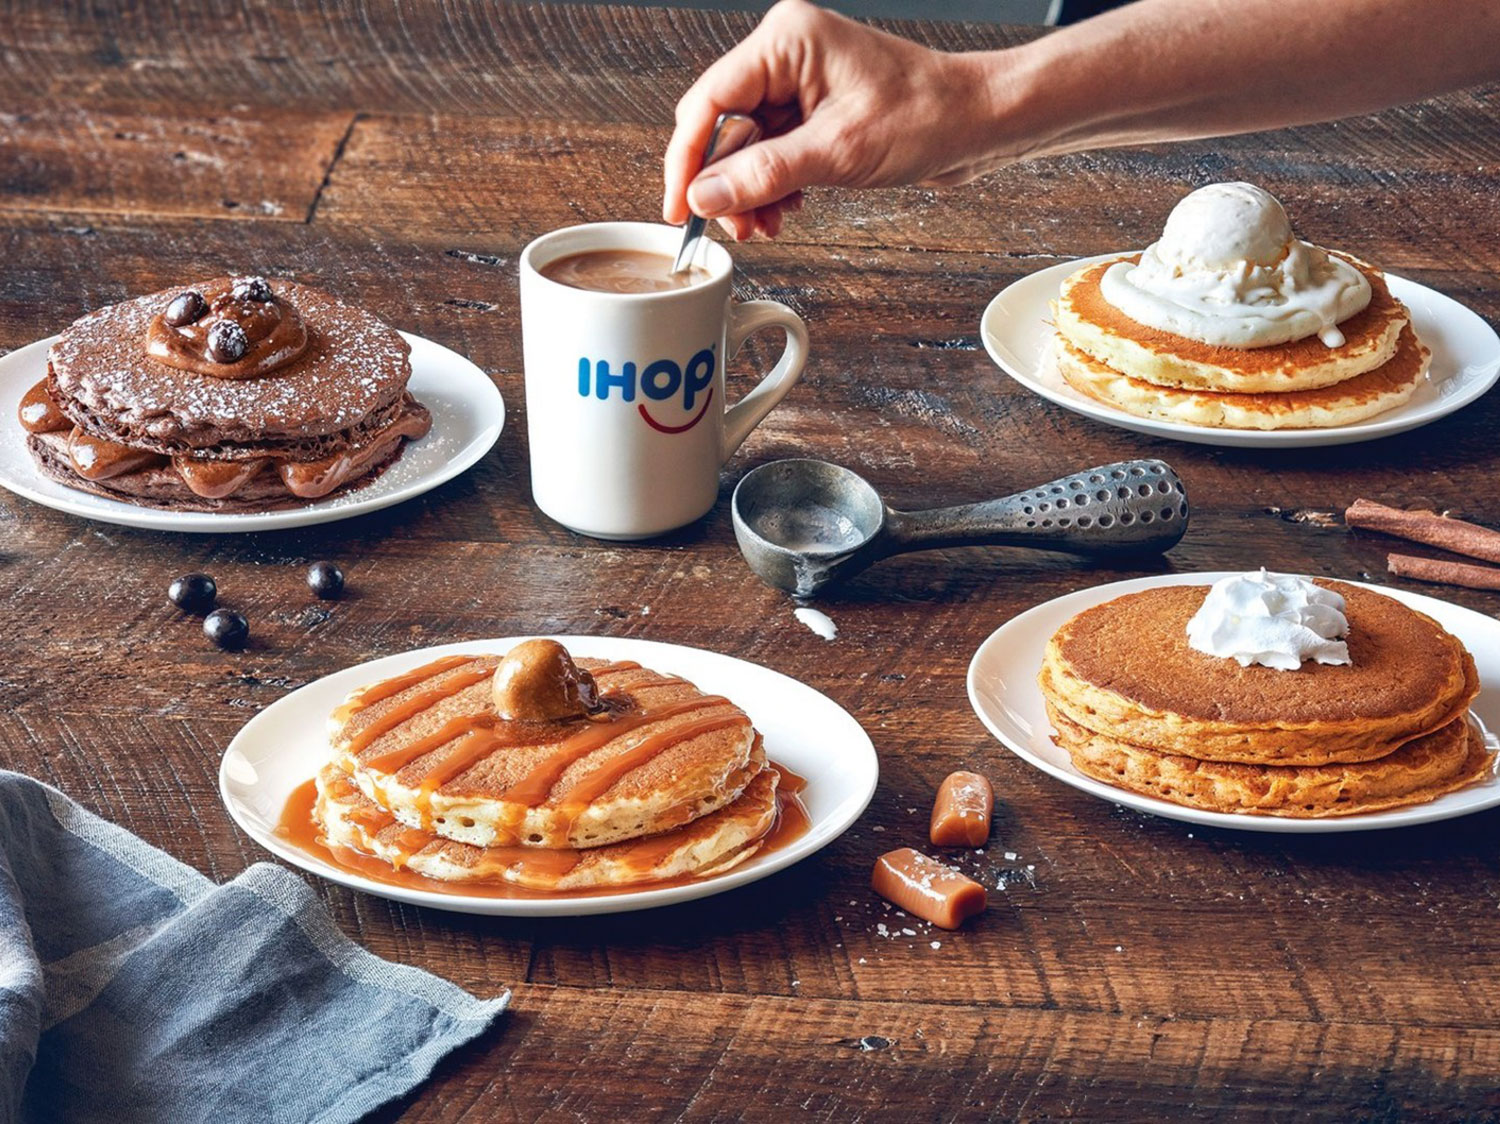 ihop coffee flavored pancakes